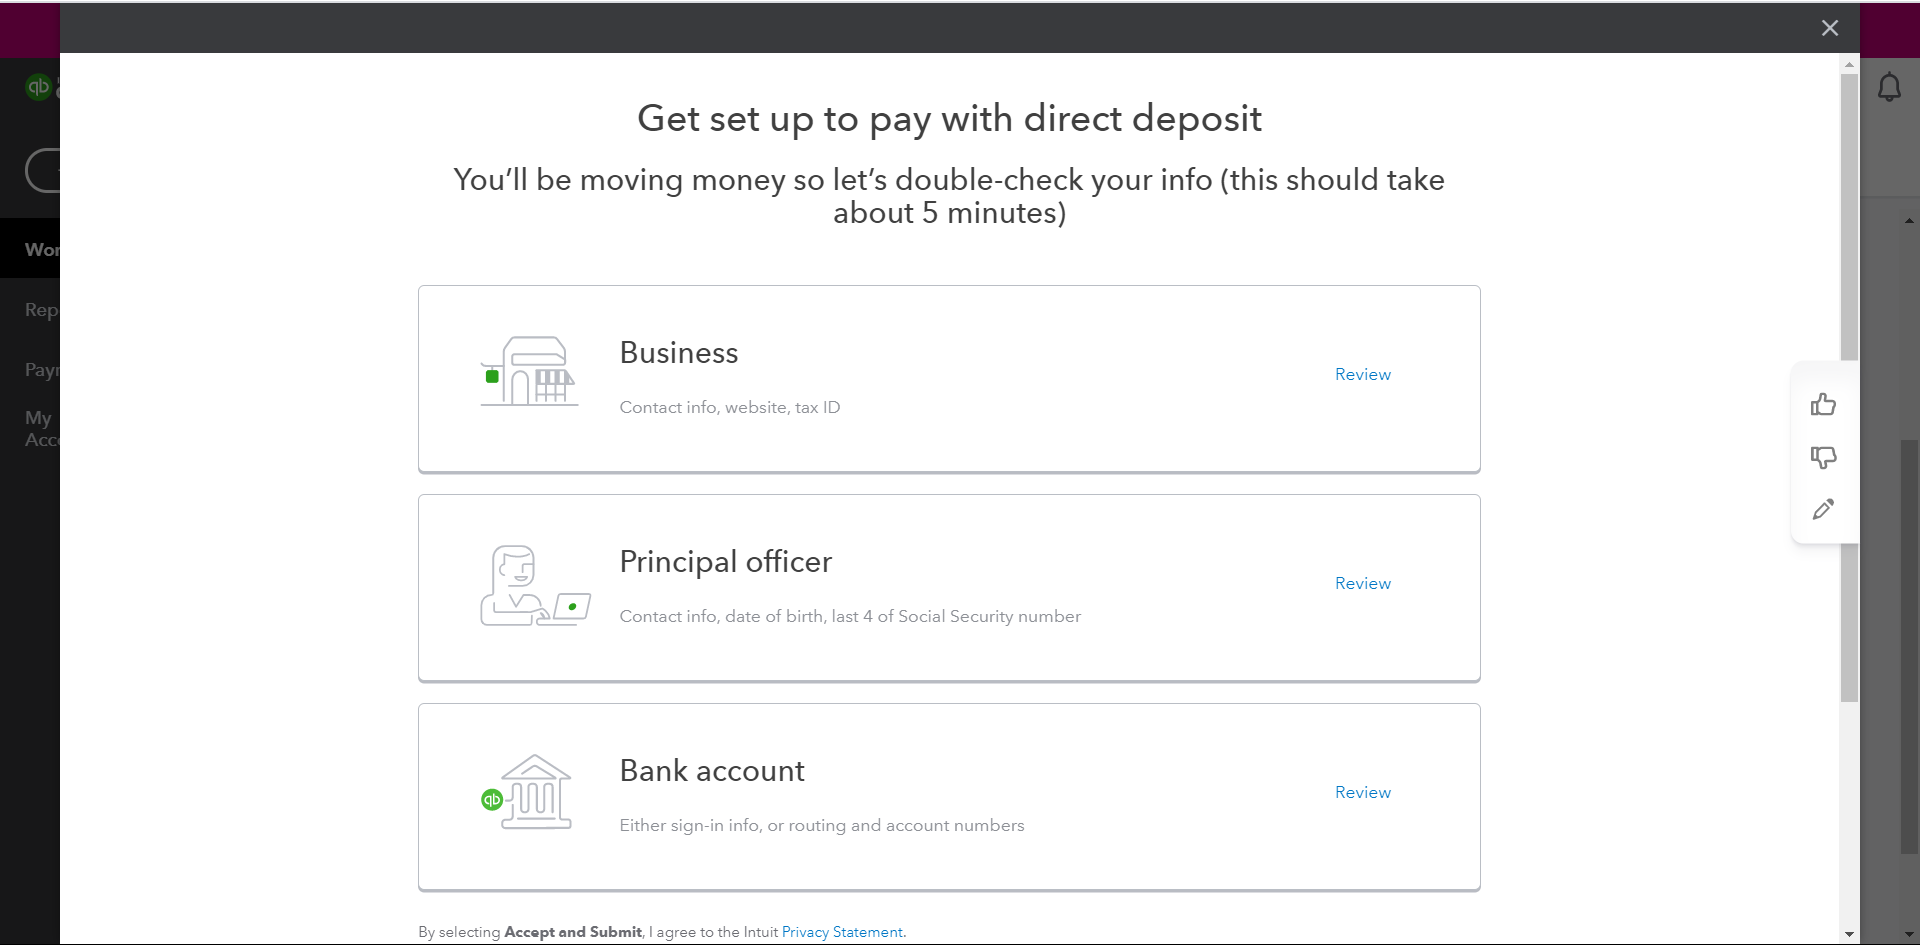 Review your banking information to these three options